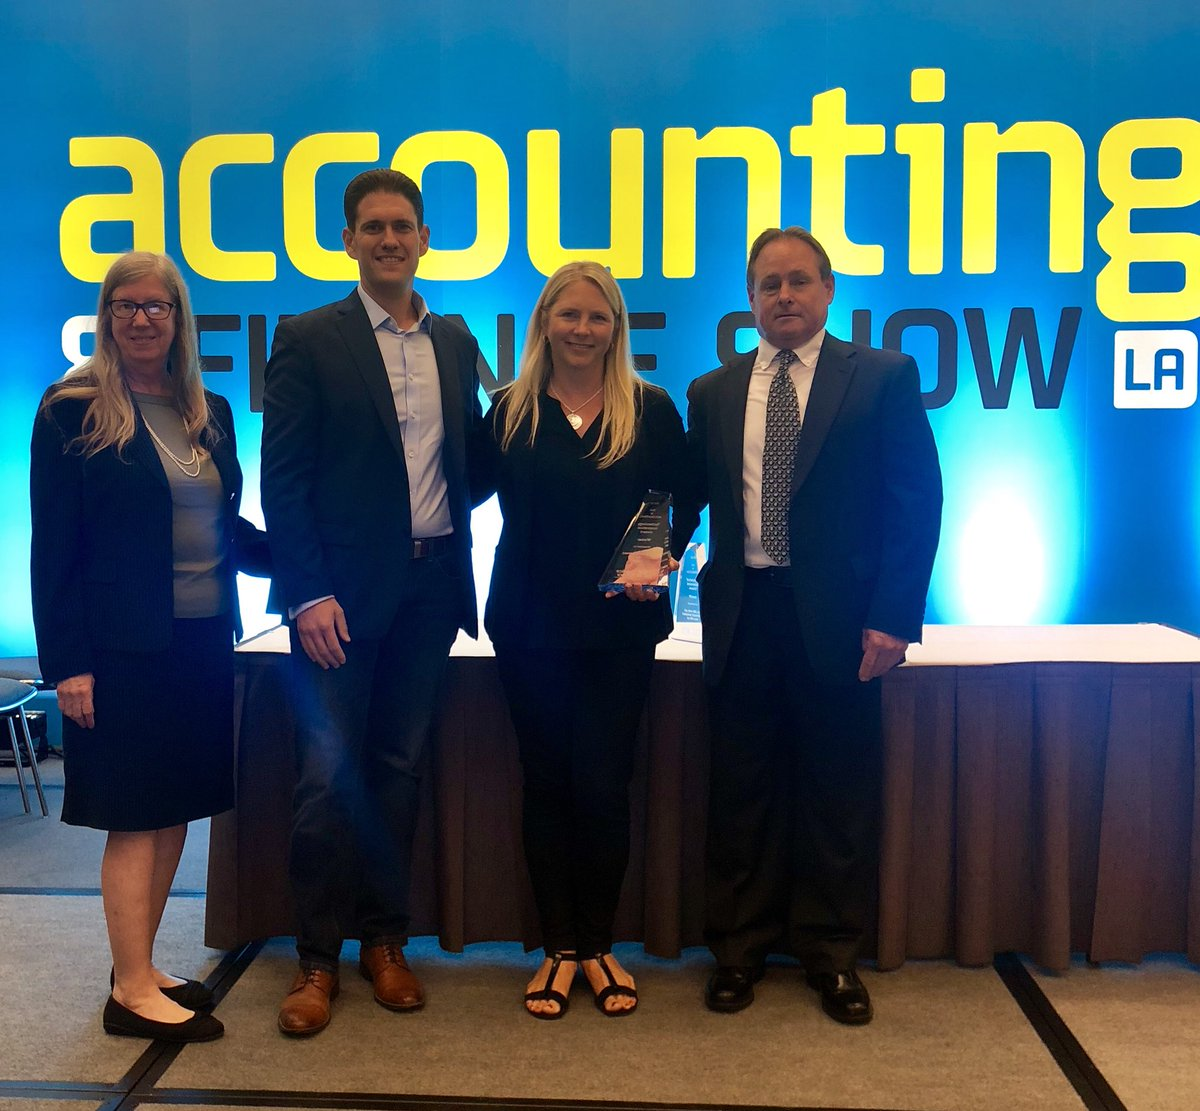 2018 CPA Practice Advisor Technology Innovation Award Winner! Honored to be the recipient for the 2nd year in a row! #AccountantConnect #ADP #AccountingShowLA #backtoback